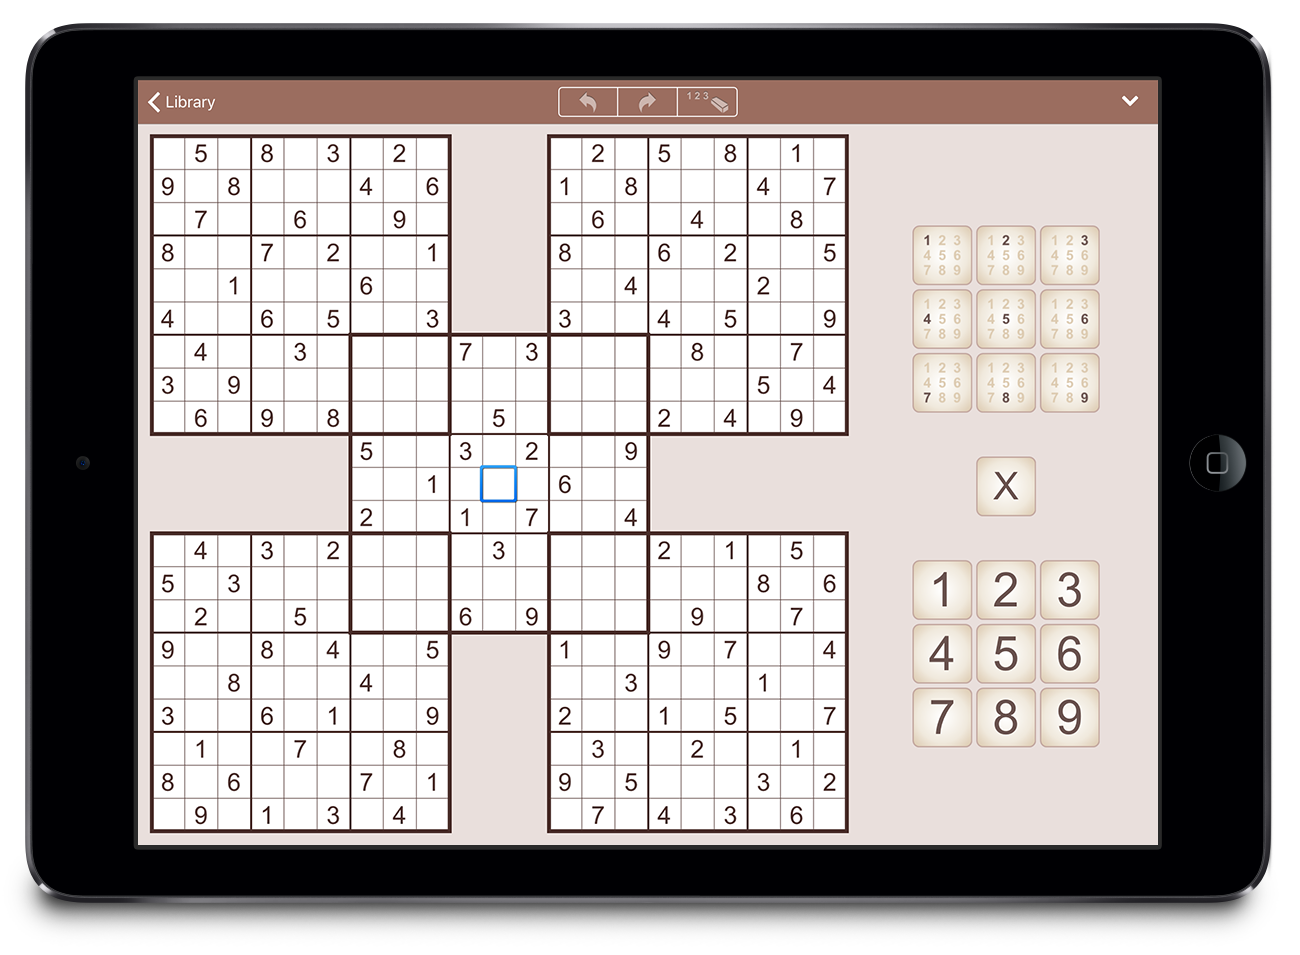 MultiSudoku for iPad - 4 Challenging Multi-Grid Variations Image